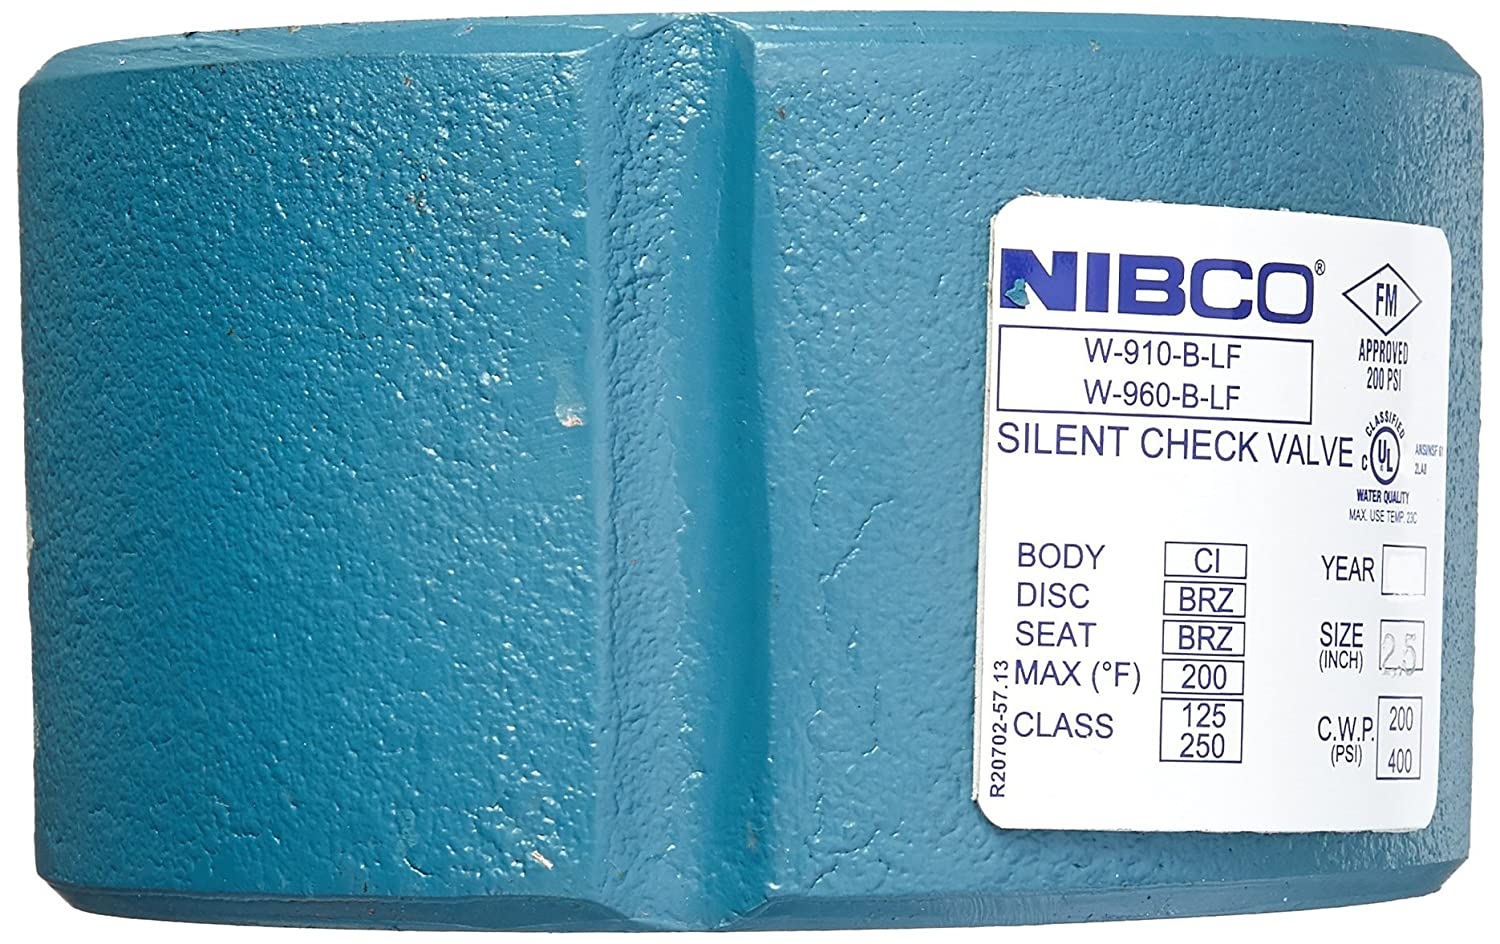 Bronze Seat and Disc NIBCO  W910B-LF//W960B-LF Silent Wafer Check Valve   Lead-Free 2-1//2 Class 125 Iron Body